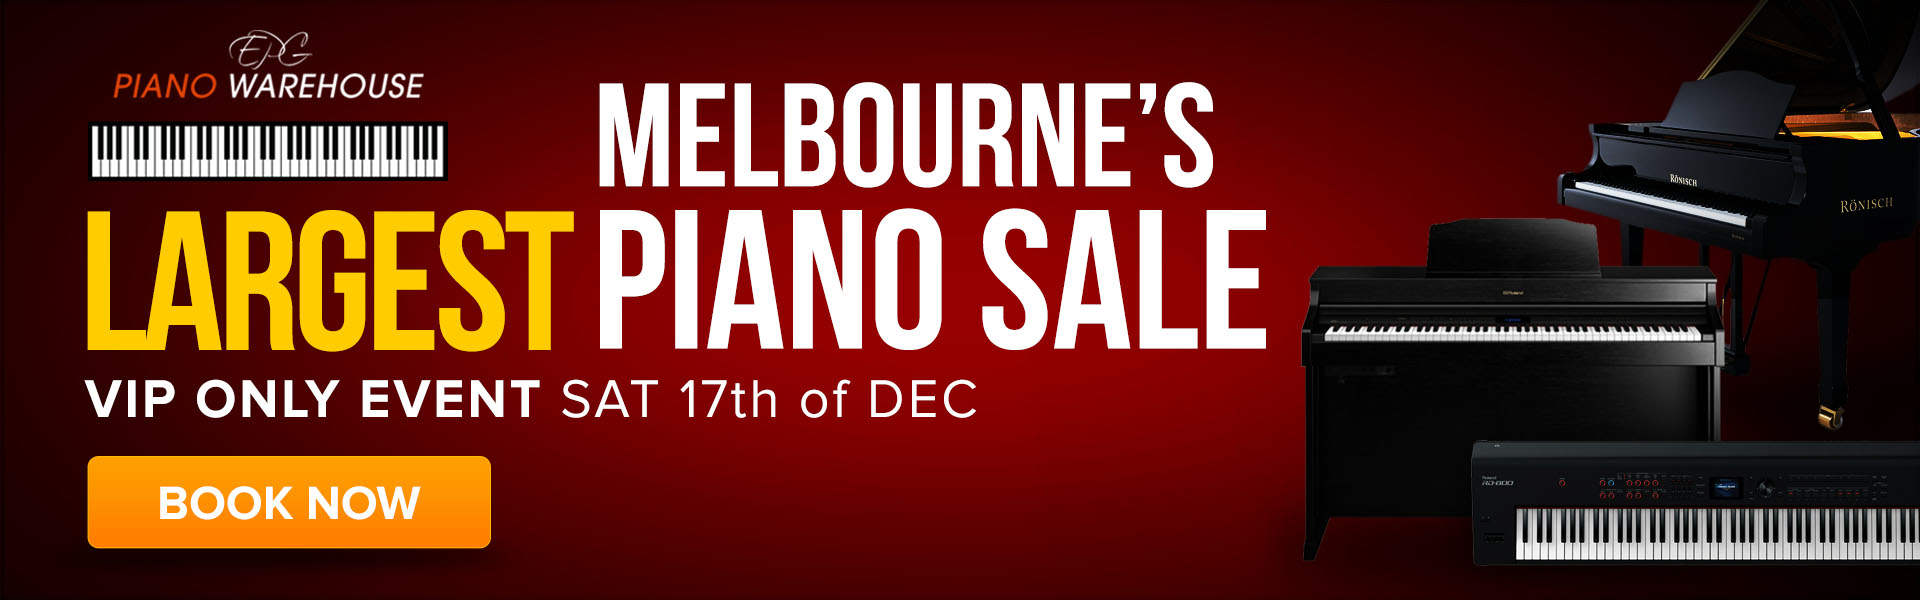 epg-largest-piano-sale